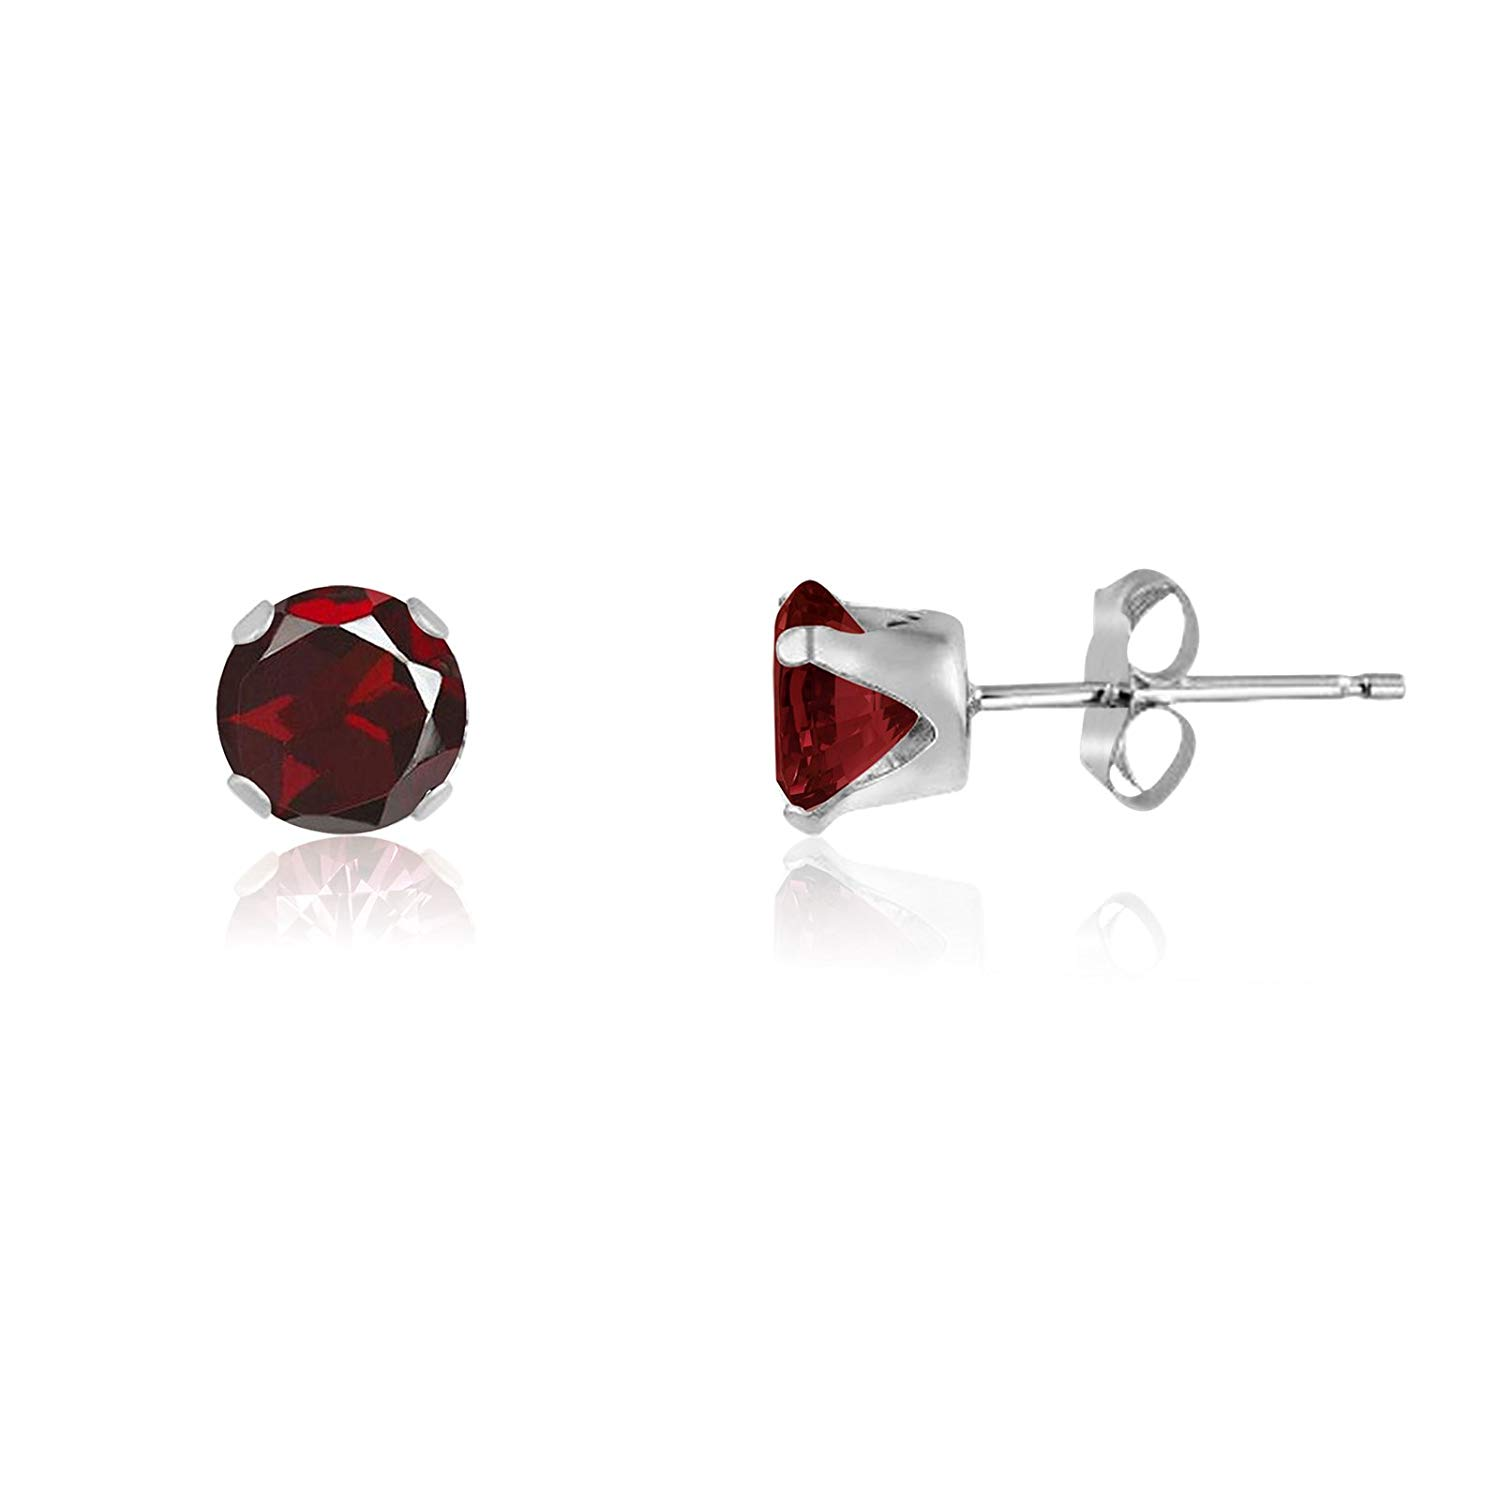 Get Quotations Round 4mm Genuine Red Garnet Stud Earrings 0 6 Cttw Sterling Silver 14k Yellow